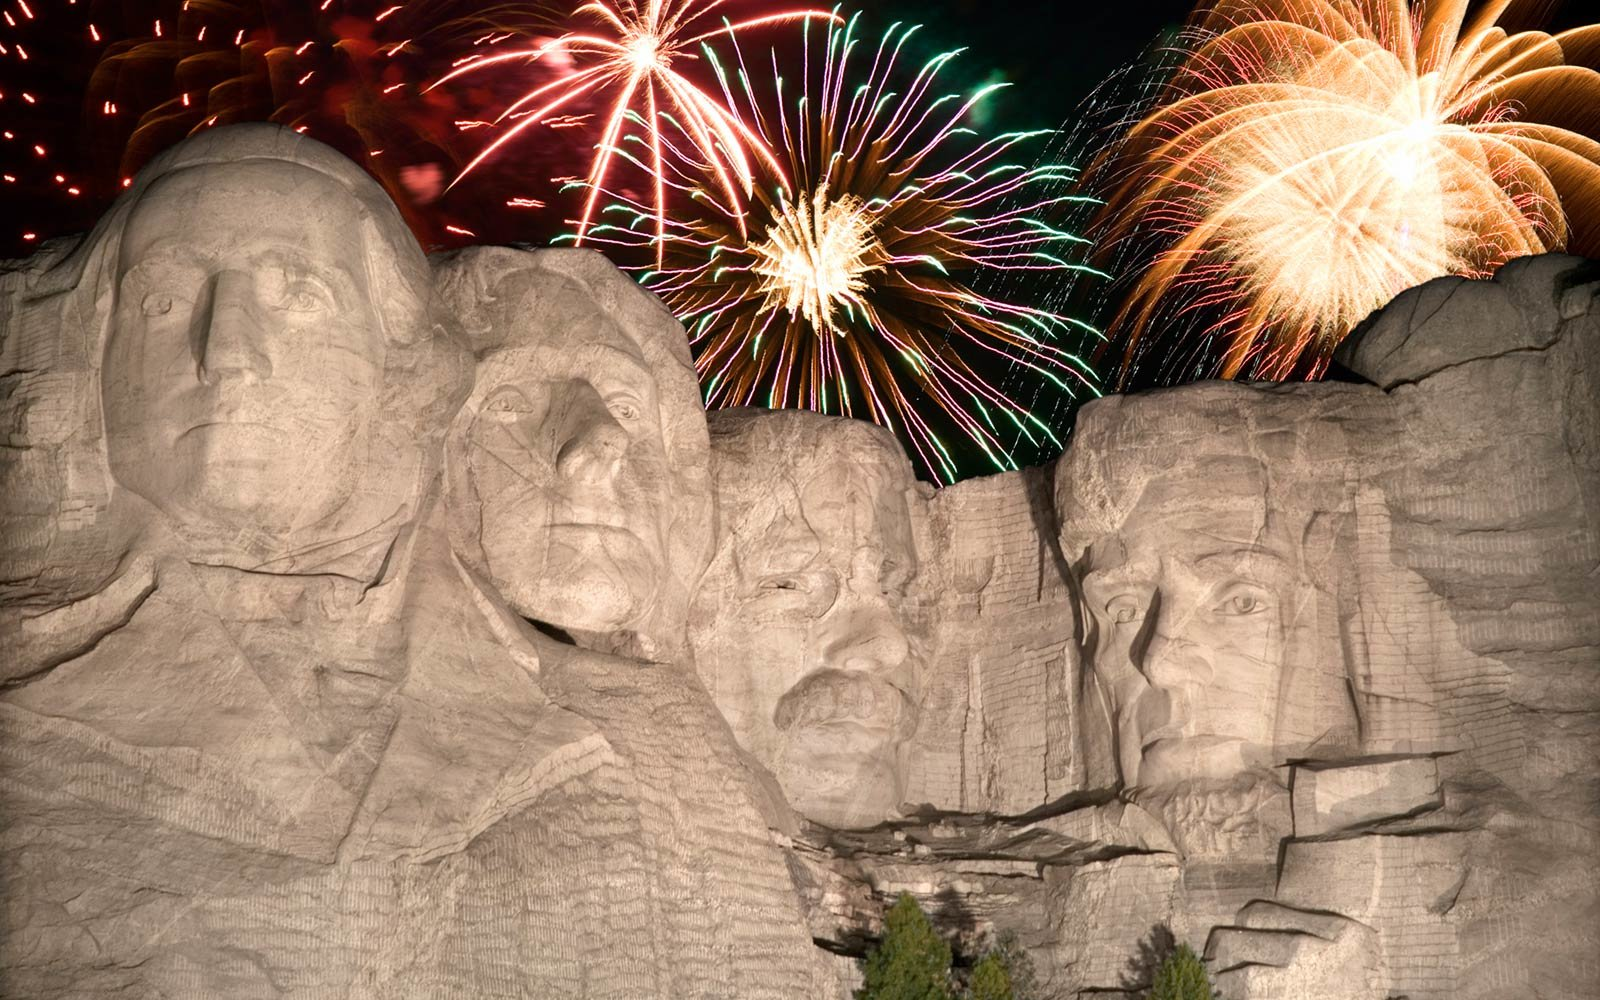 Mount Rushmore, Fourth of July, South Dakota